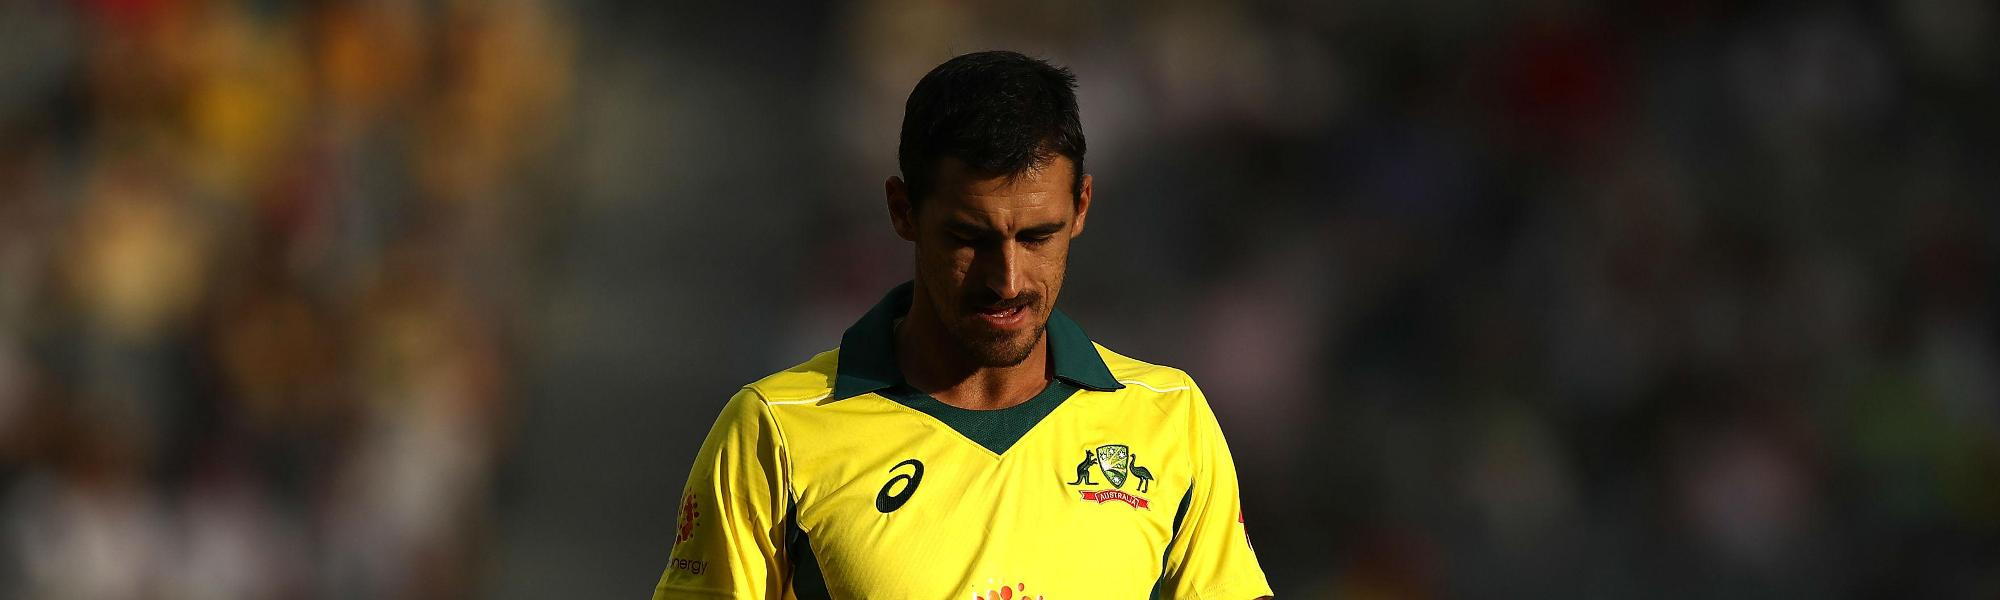 Mitchell Starc has been called up as Billy Stanlake's replacement